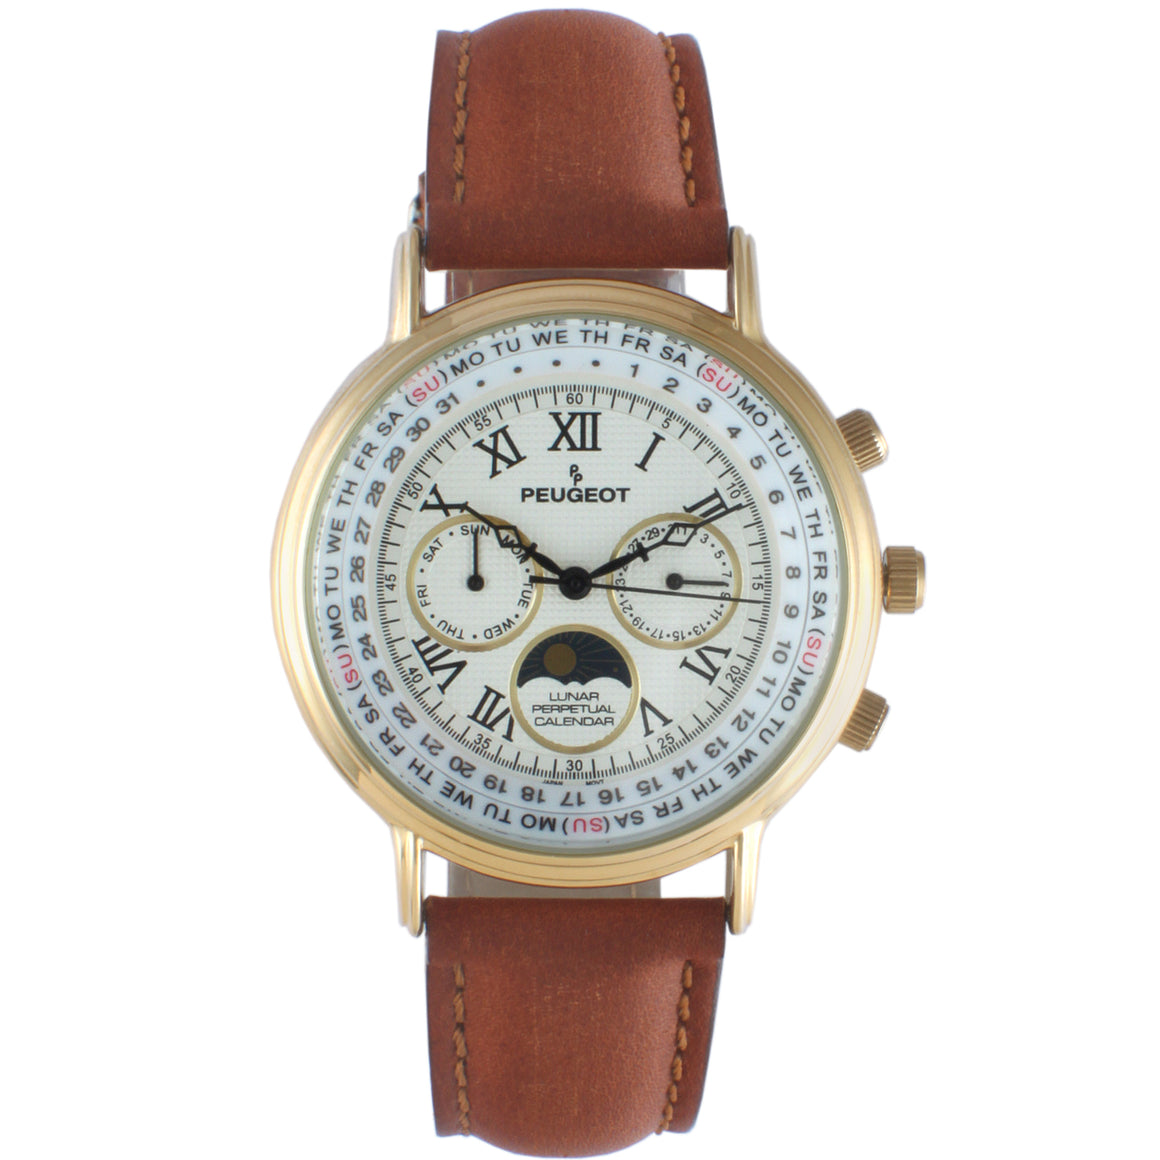 Peugeot Vintage Multi-Function Watch ,Perpetual Calendar with Moon Phase, Brown Leather Band - Peugeot Watches